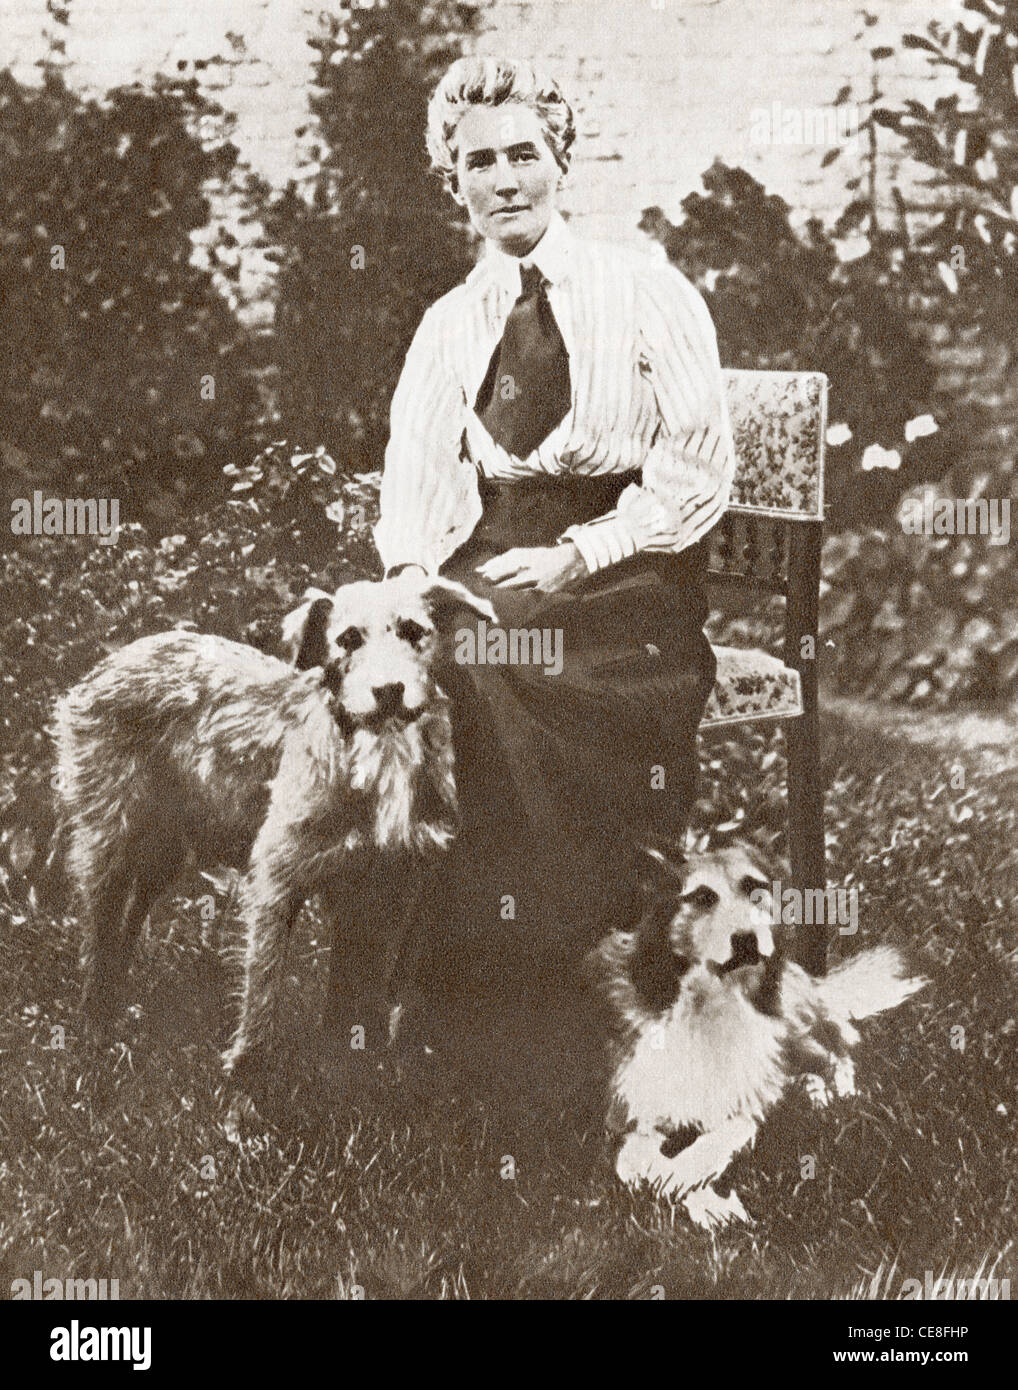 Edith Louisa Cavell, 1865 – 1915. British nurse and patriot, executed by the Germans - Stock Image